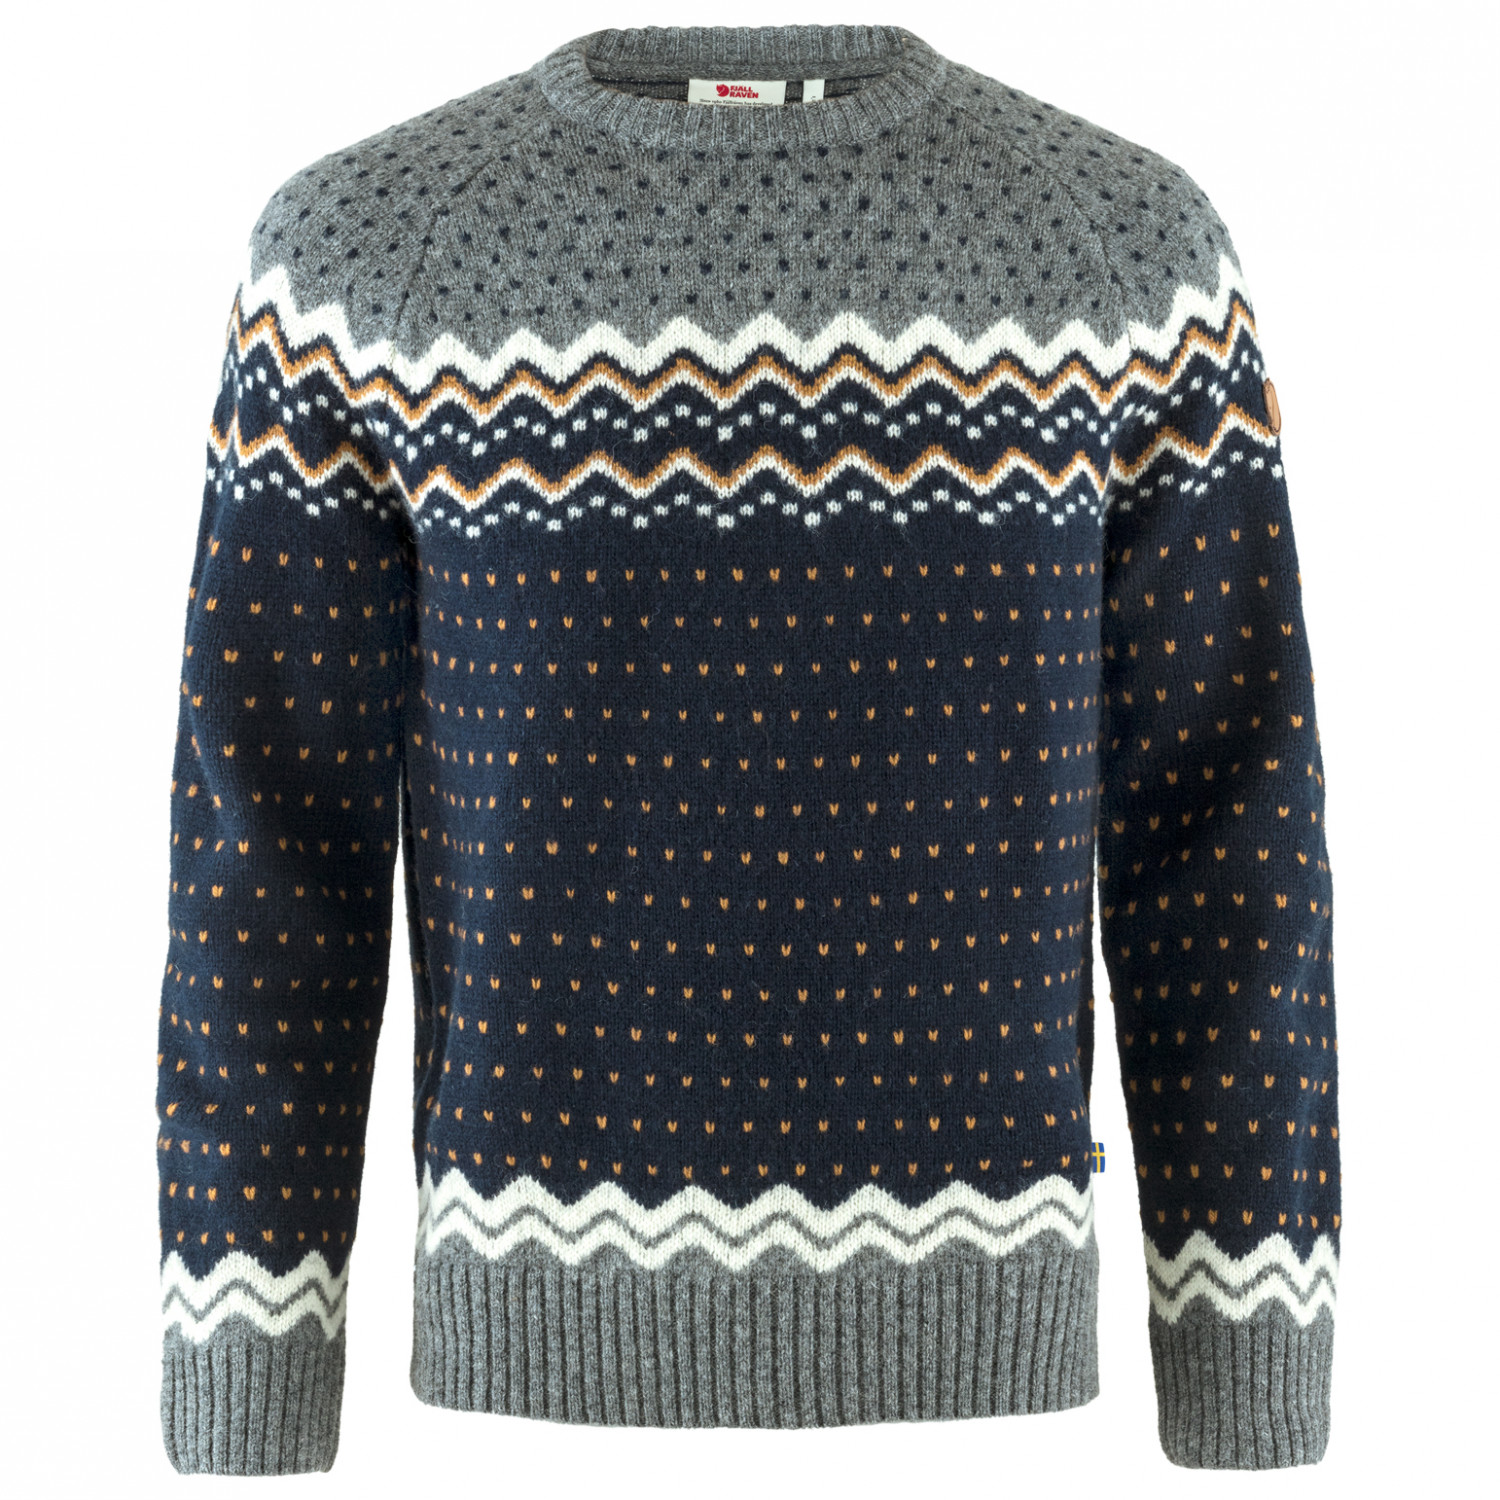 Fjällräven Övik Knit Sweater heren